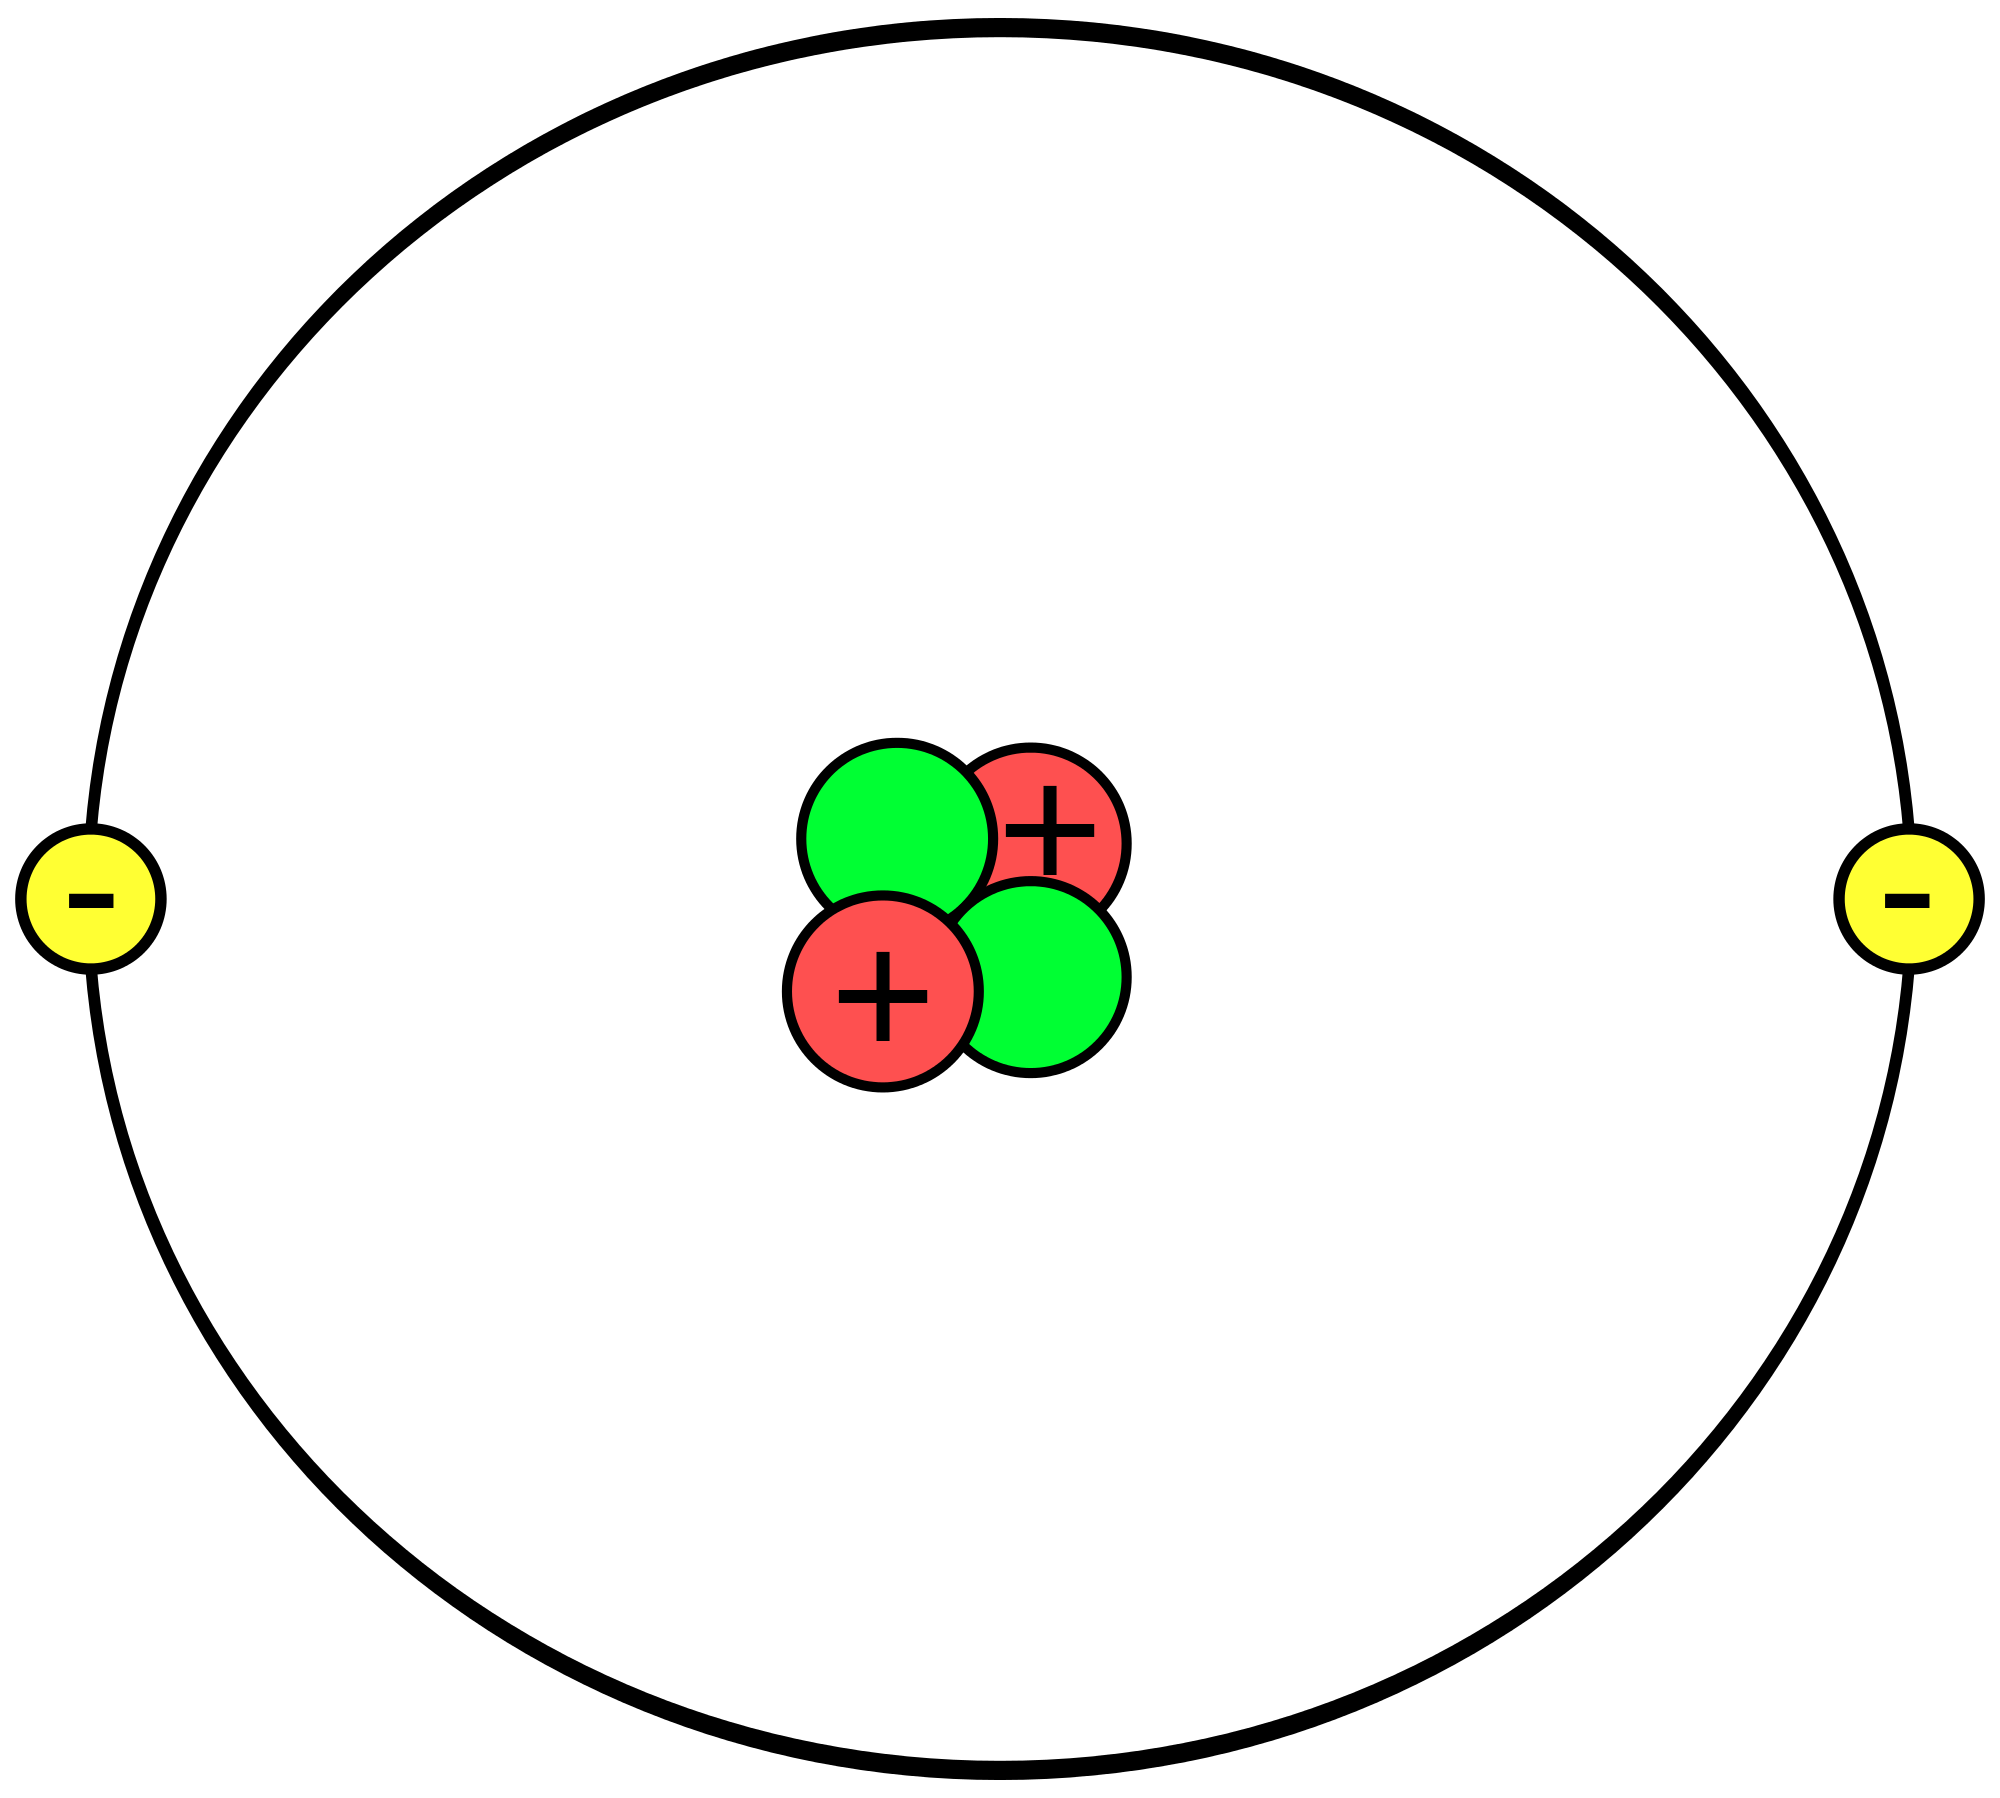 Nucleus transparent unlabeled. Atom diagram search for